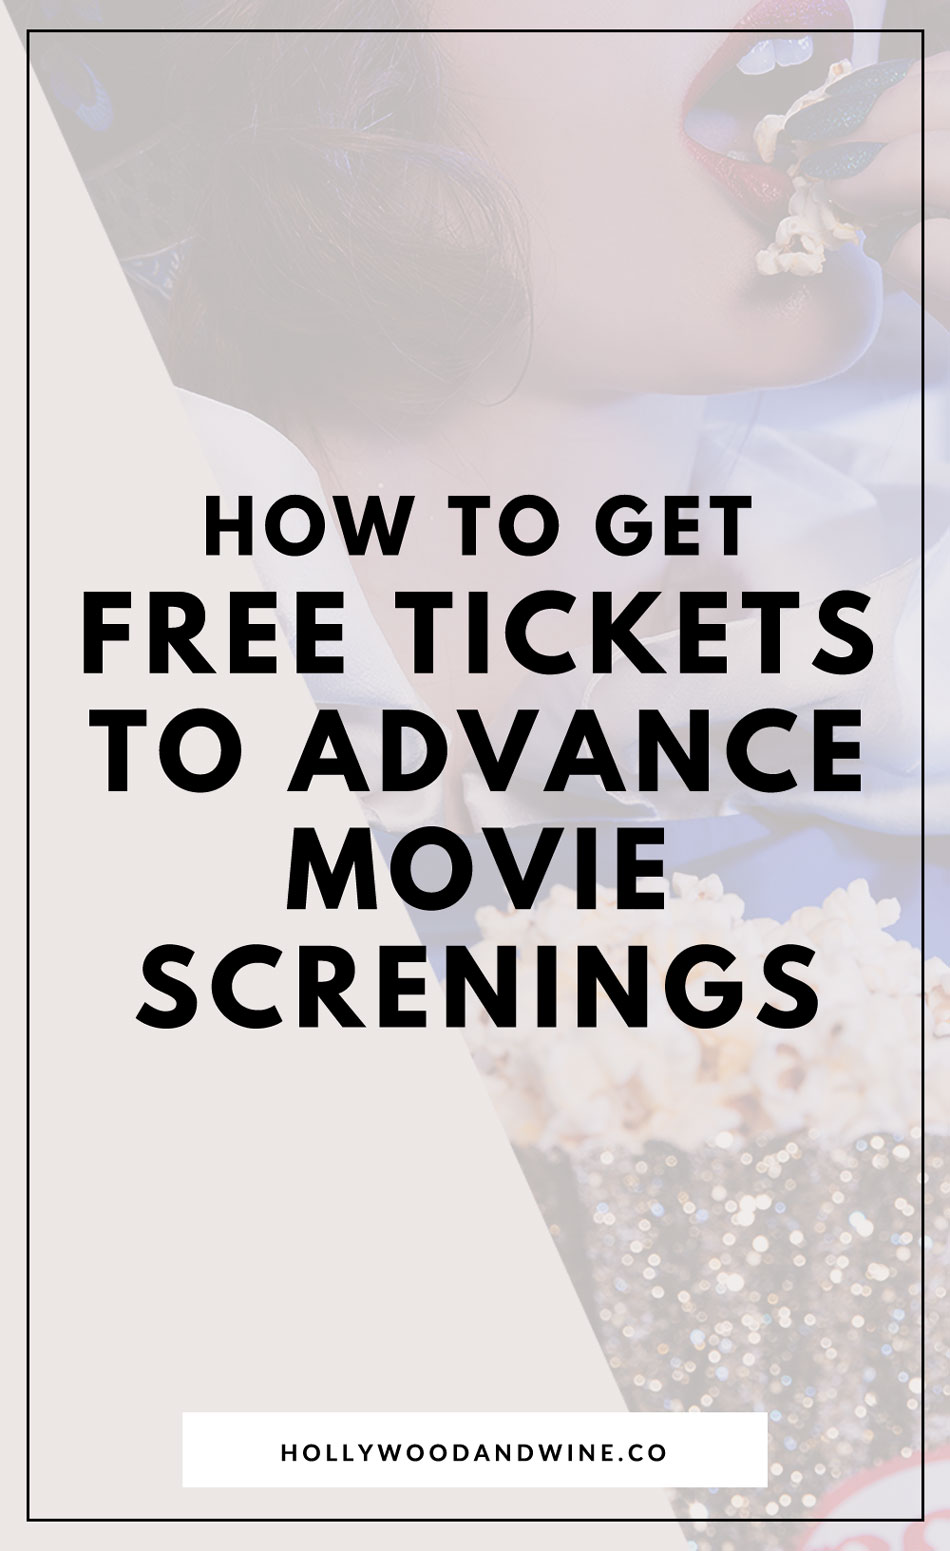 How to get free tickets to advance movie screenings